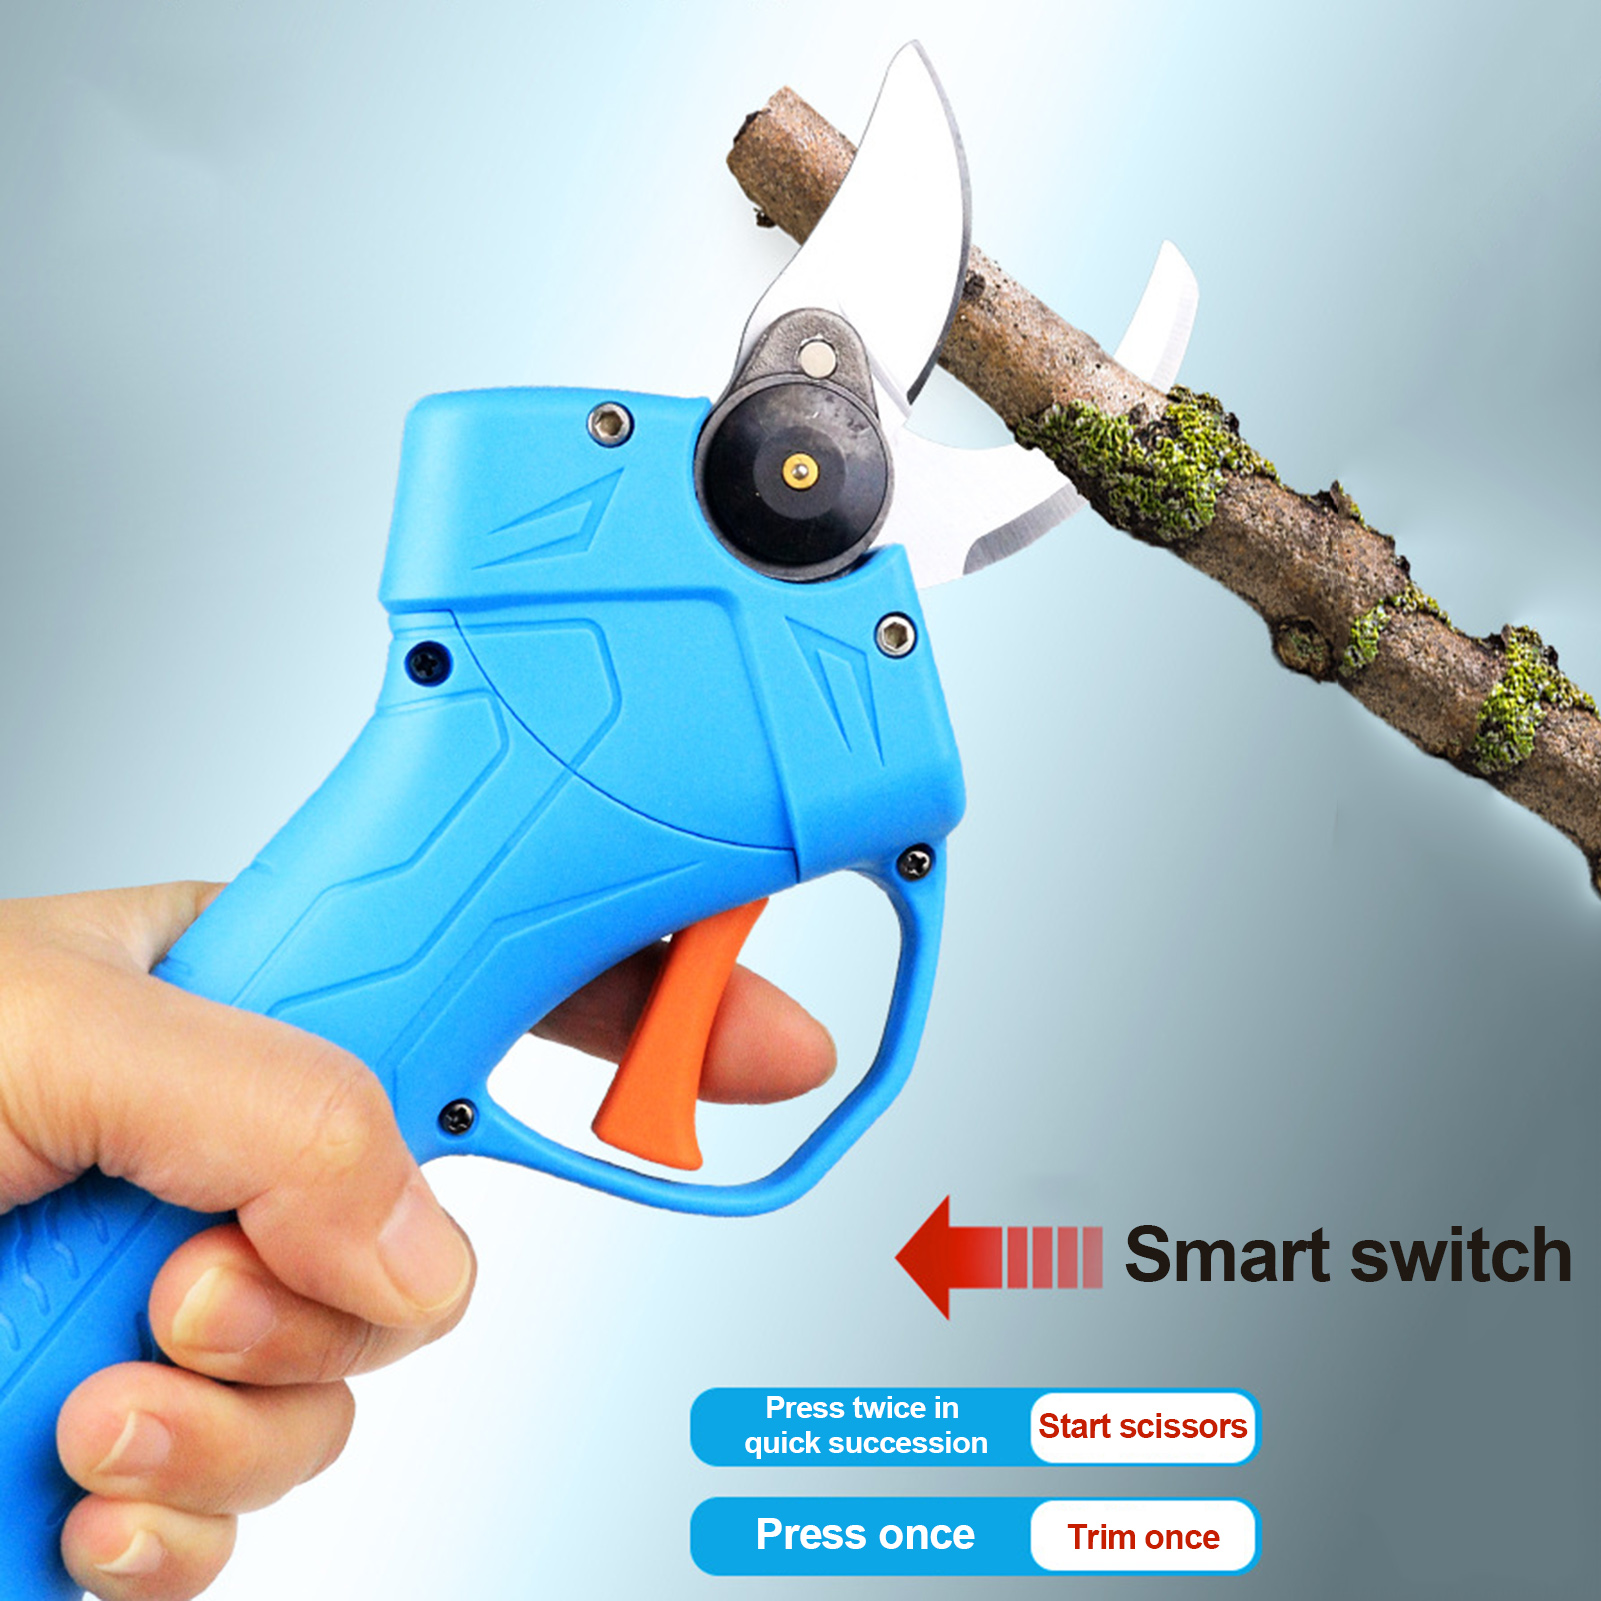 Cordless Pruner Electric Pruning Shear 16 8V Lithium Battery Efficient Fruit Tree Bonsai Pruning Branch Cutter Garden Power Tool